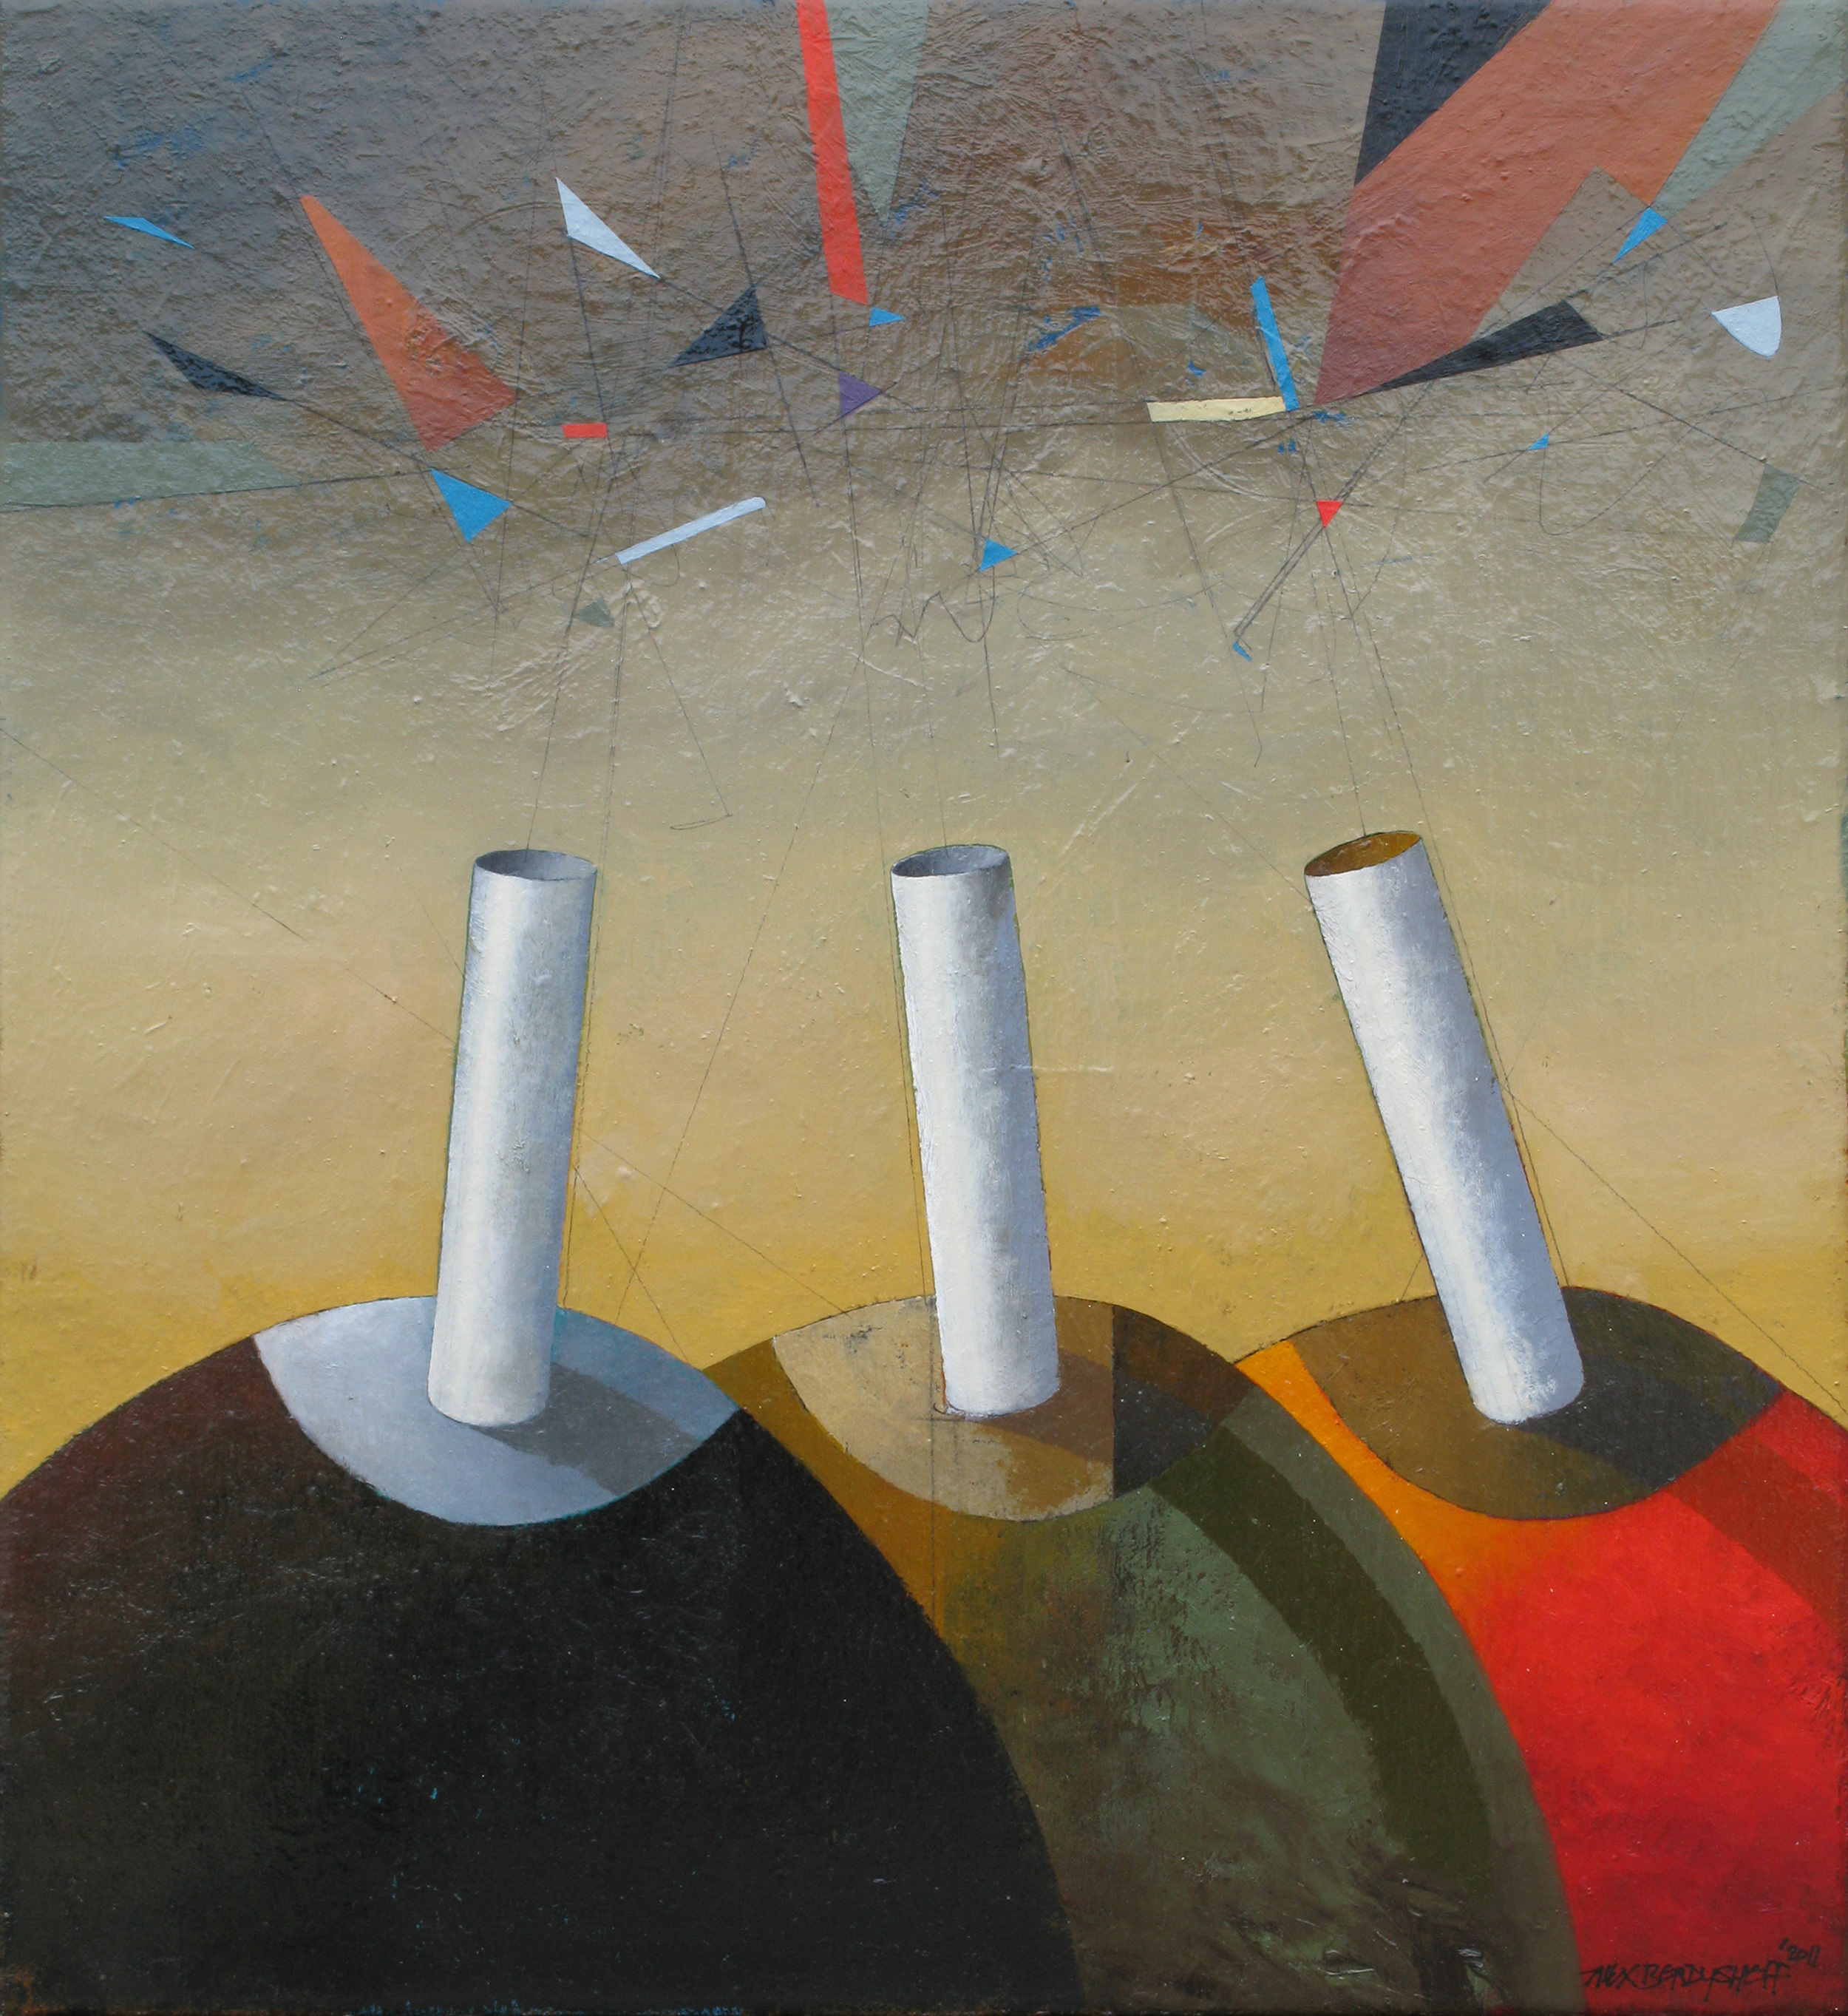 Opinions, oil on canvas, 60x55 cm, 2011